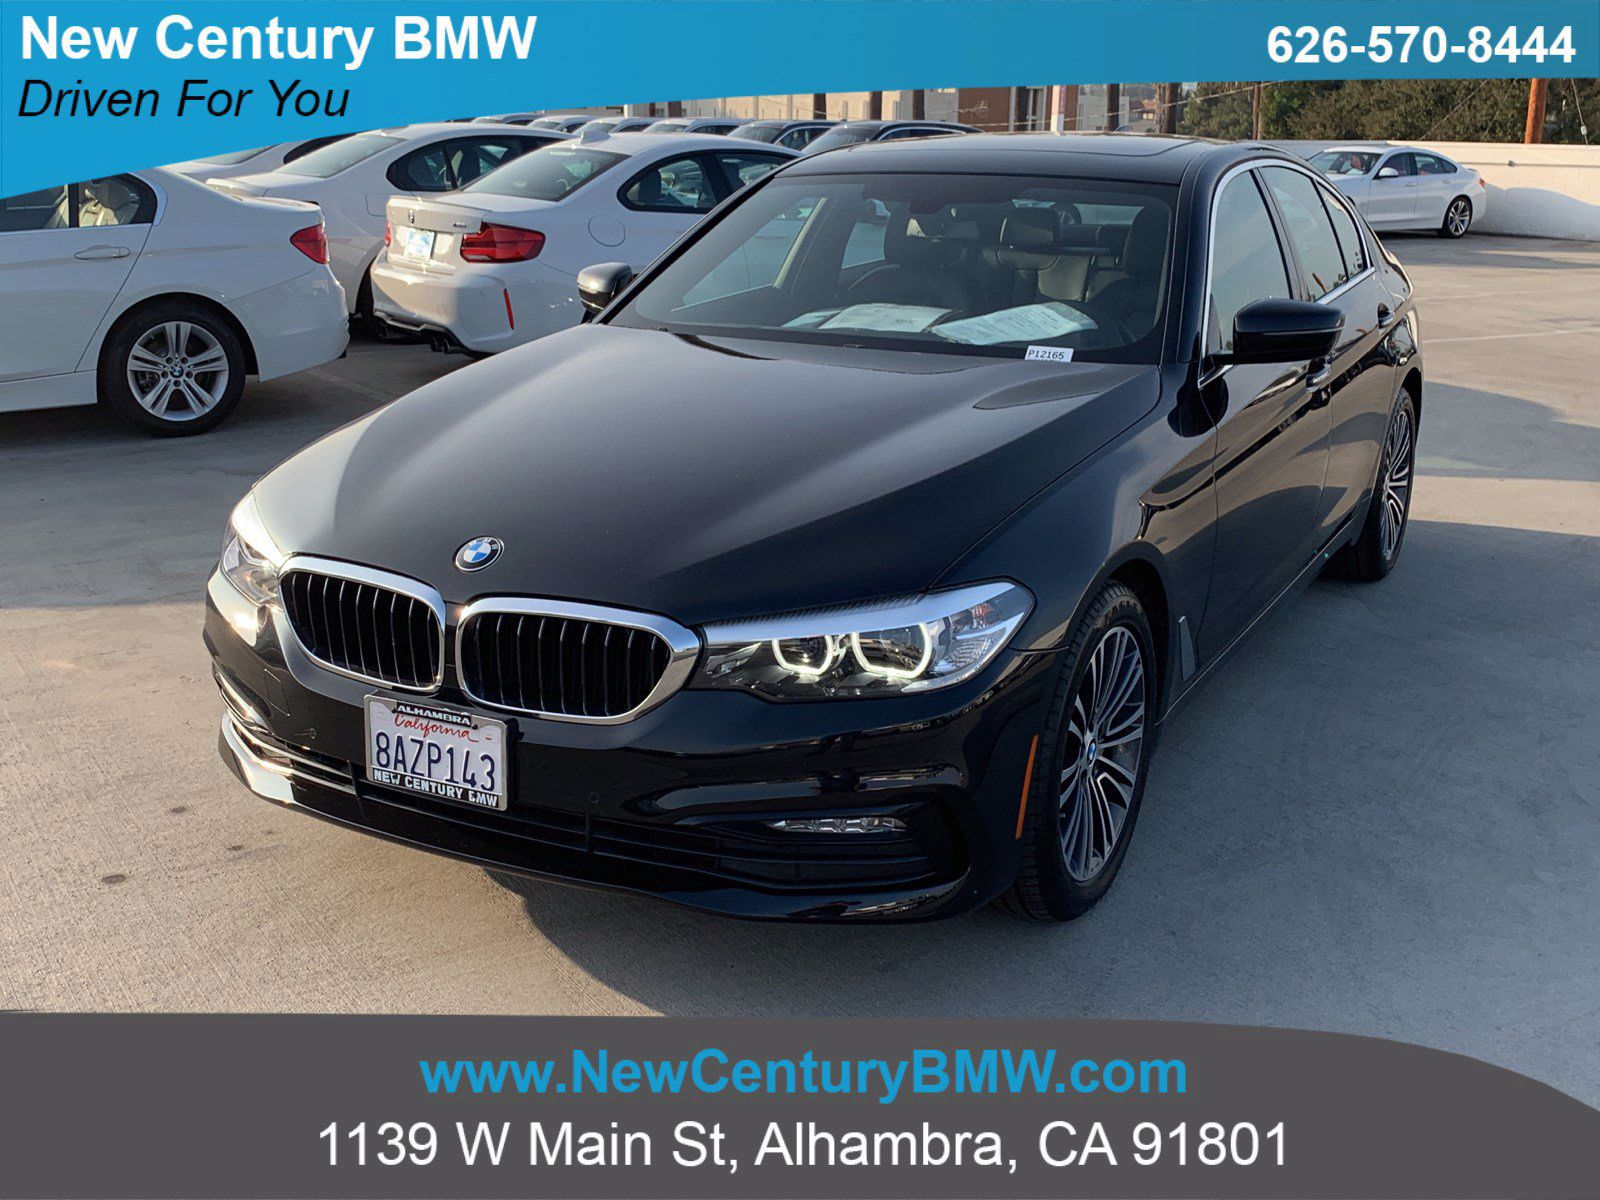 Used 2018 Bmw 5 Series For Sale Near Monrovia Ca Used Car Dealer In Alhambra